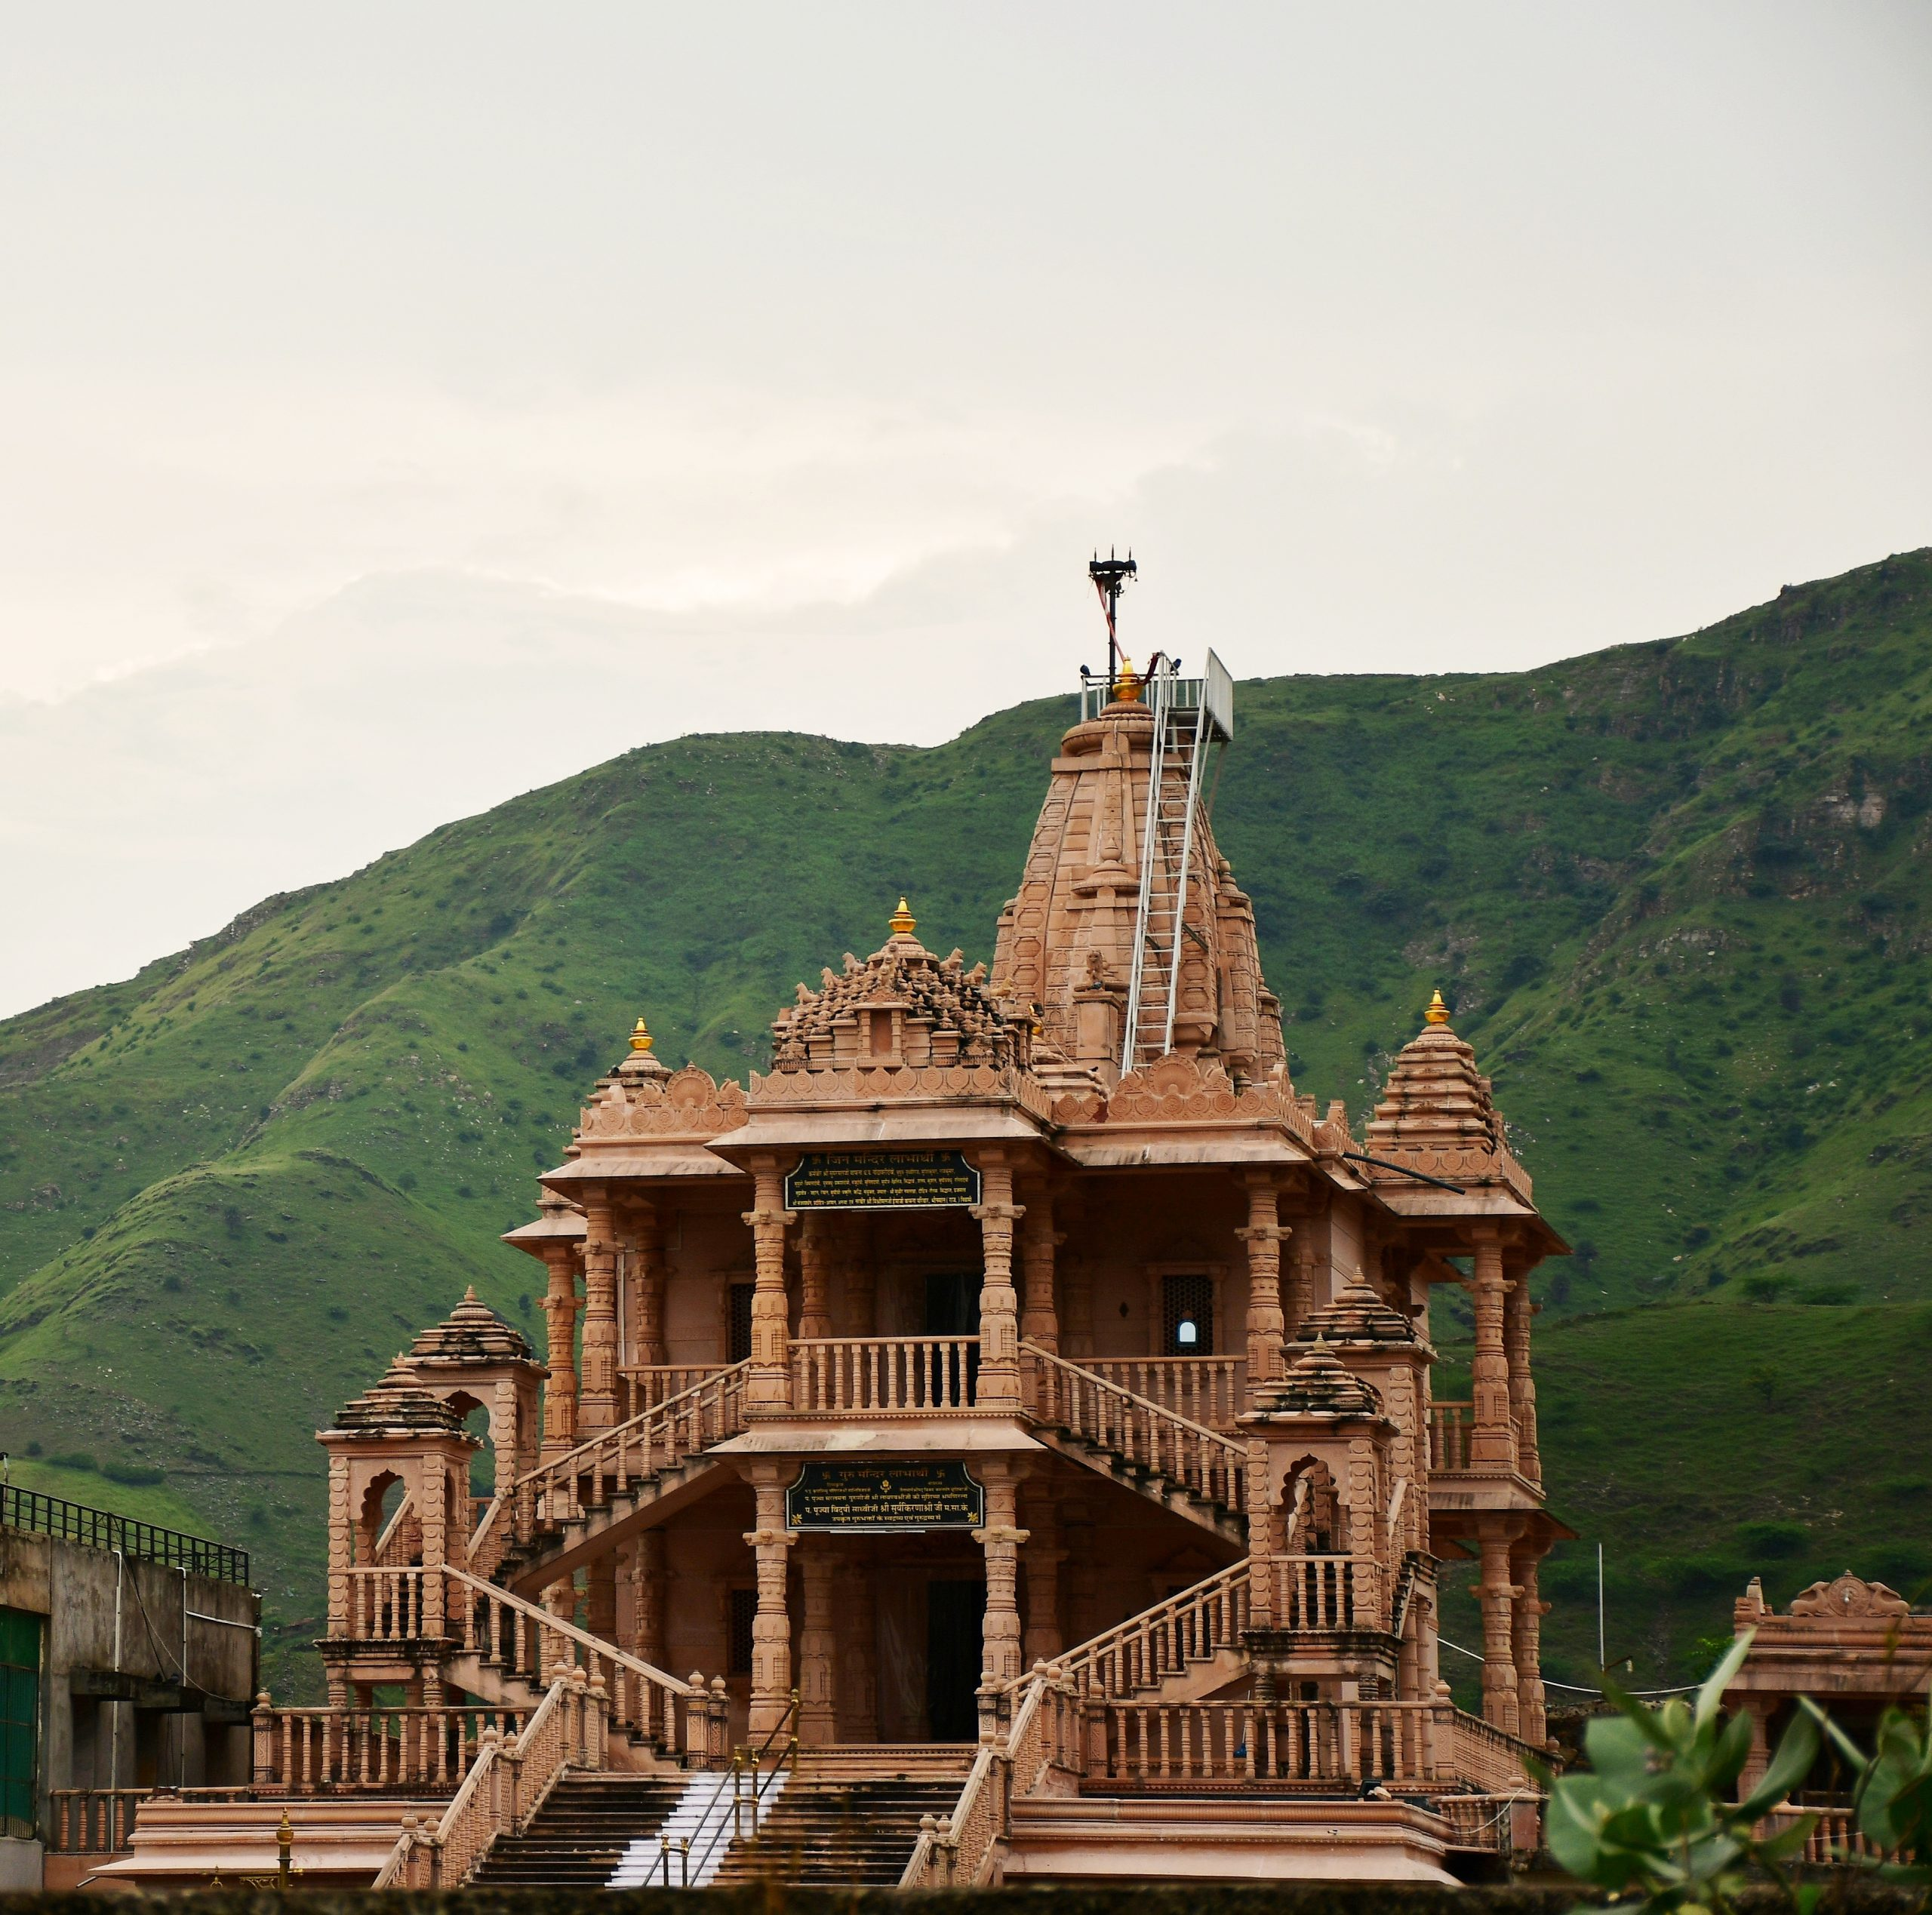 An old temple under mountains